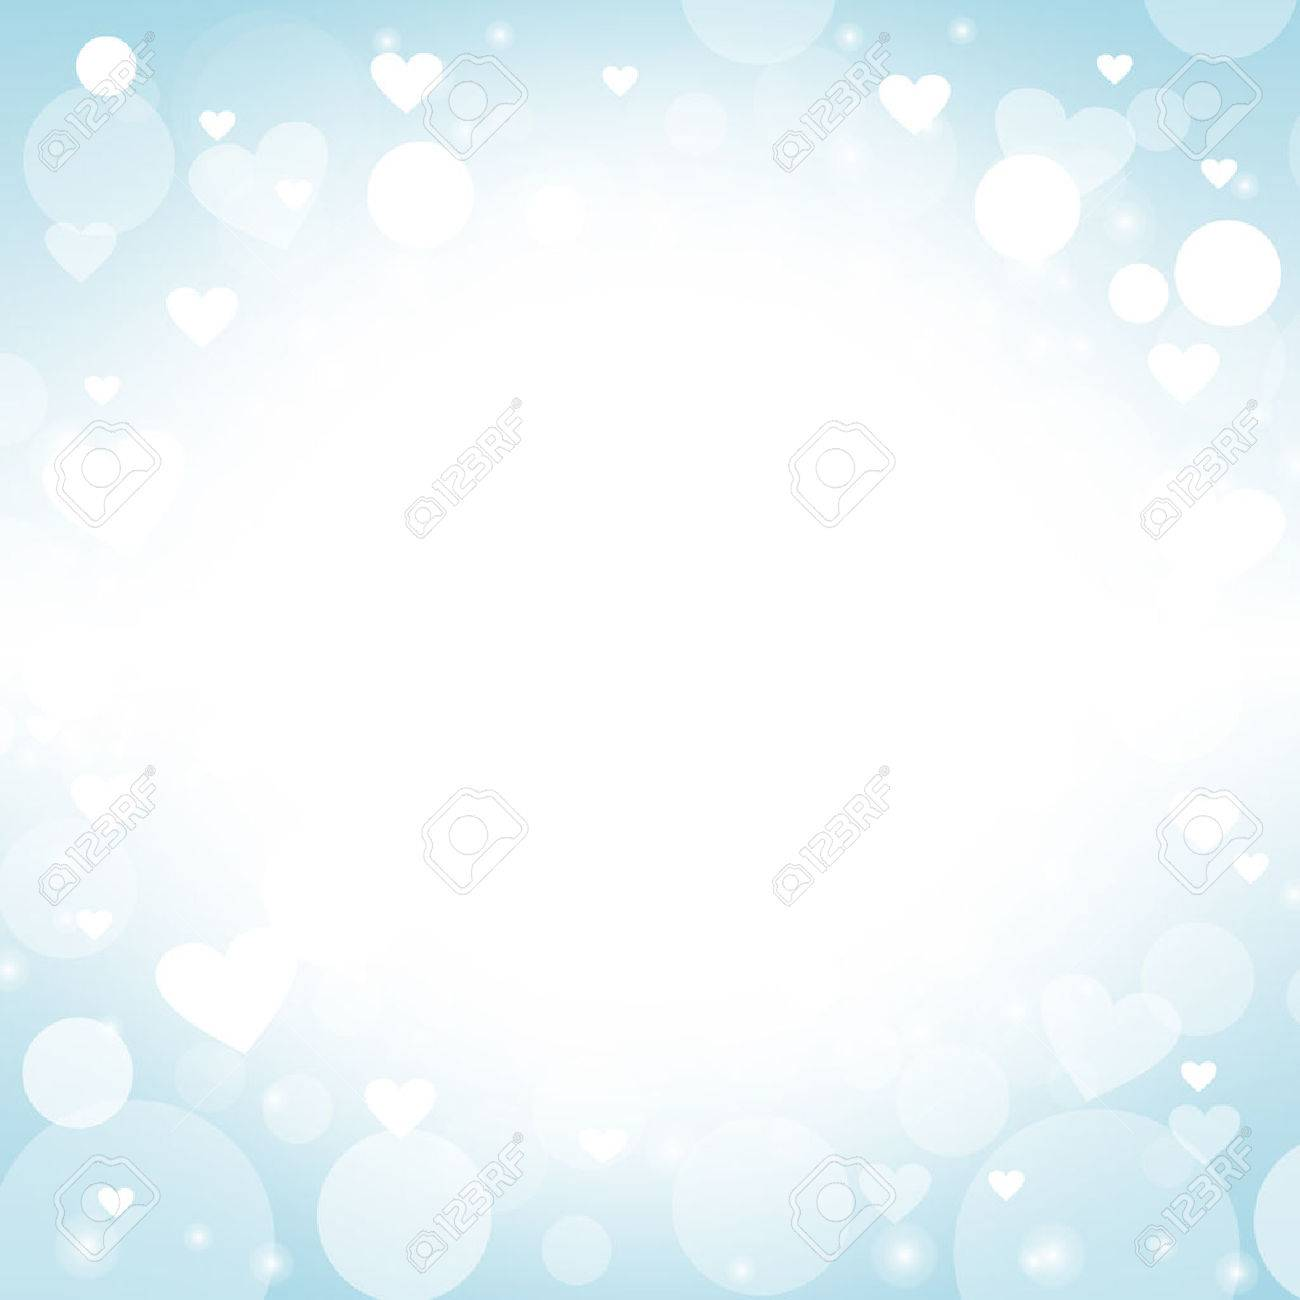 heart shape vector abstract blue background design ideas for valentines day love cards